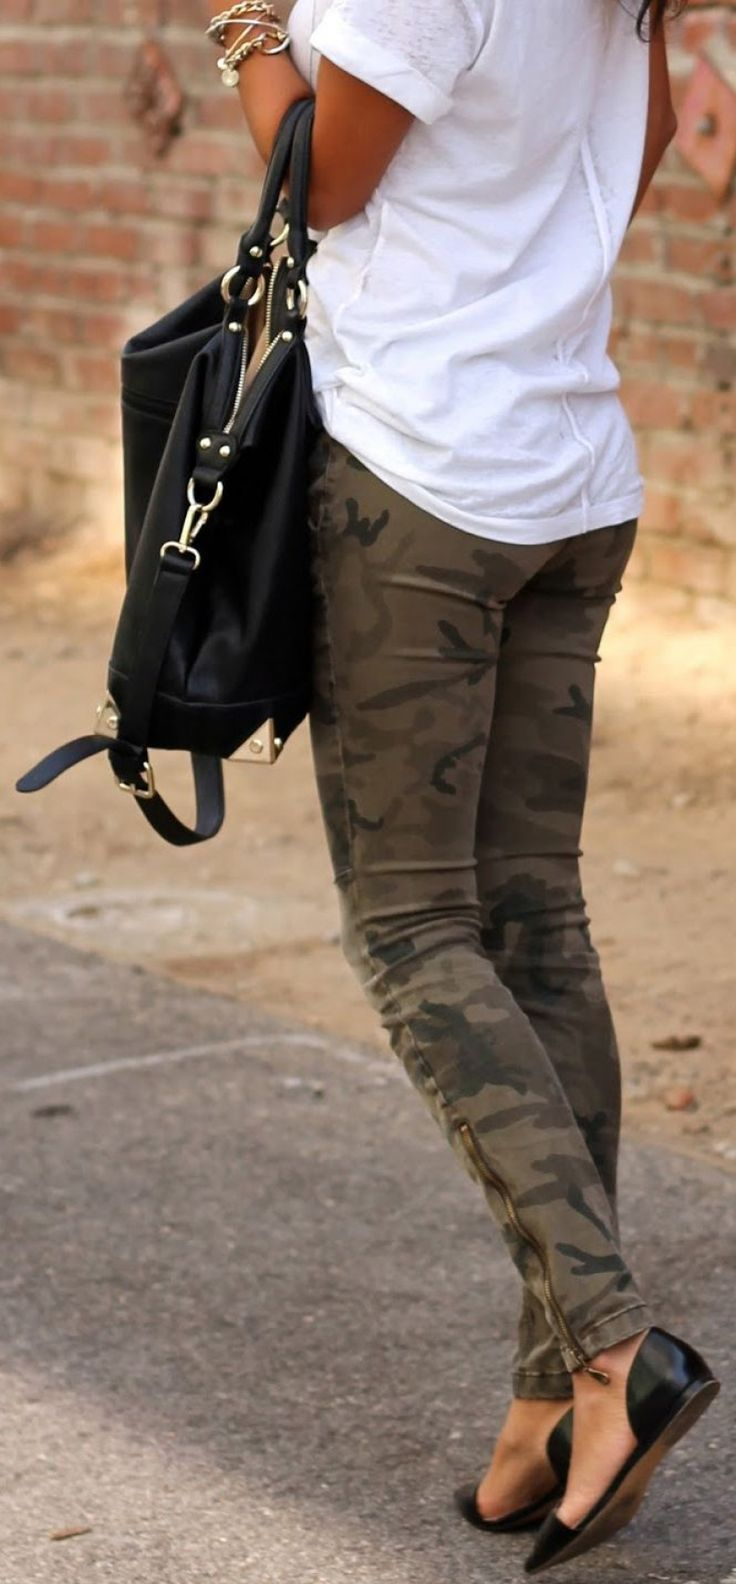 Best summer style - Best Street Style - 15 Military pants; fashion trend for this season... LOVE!